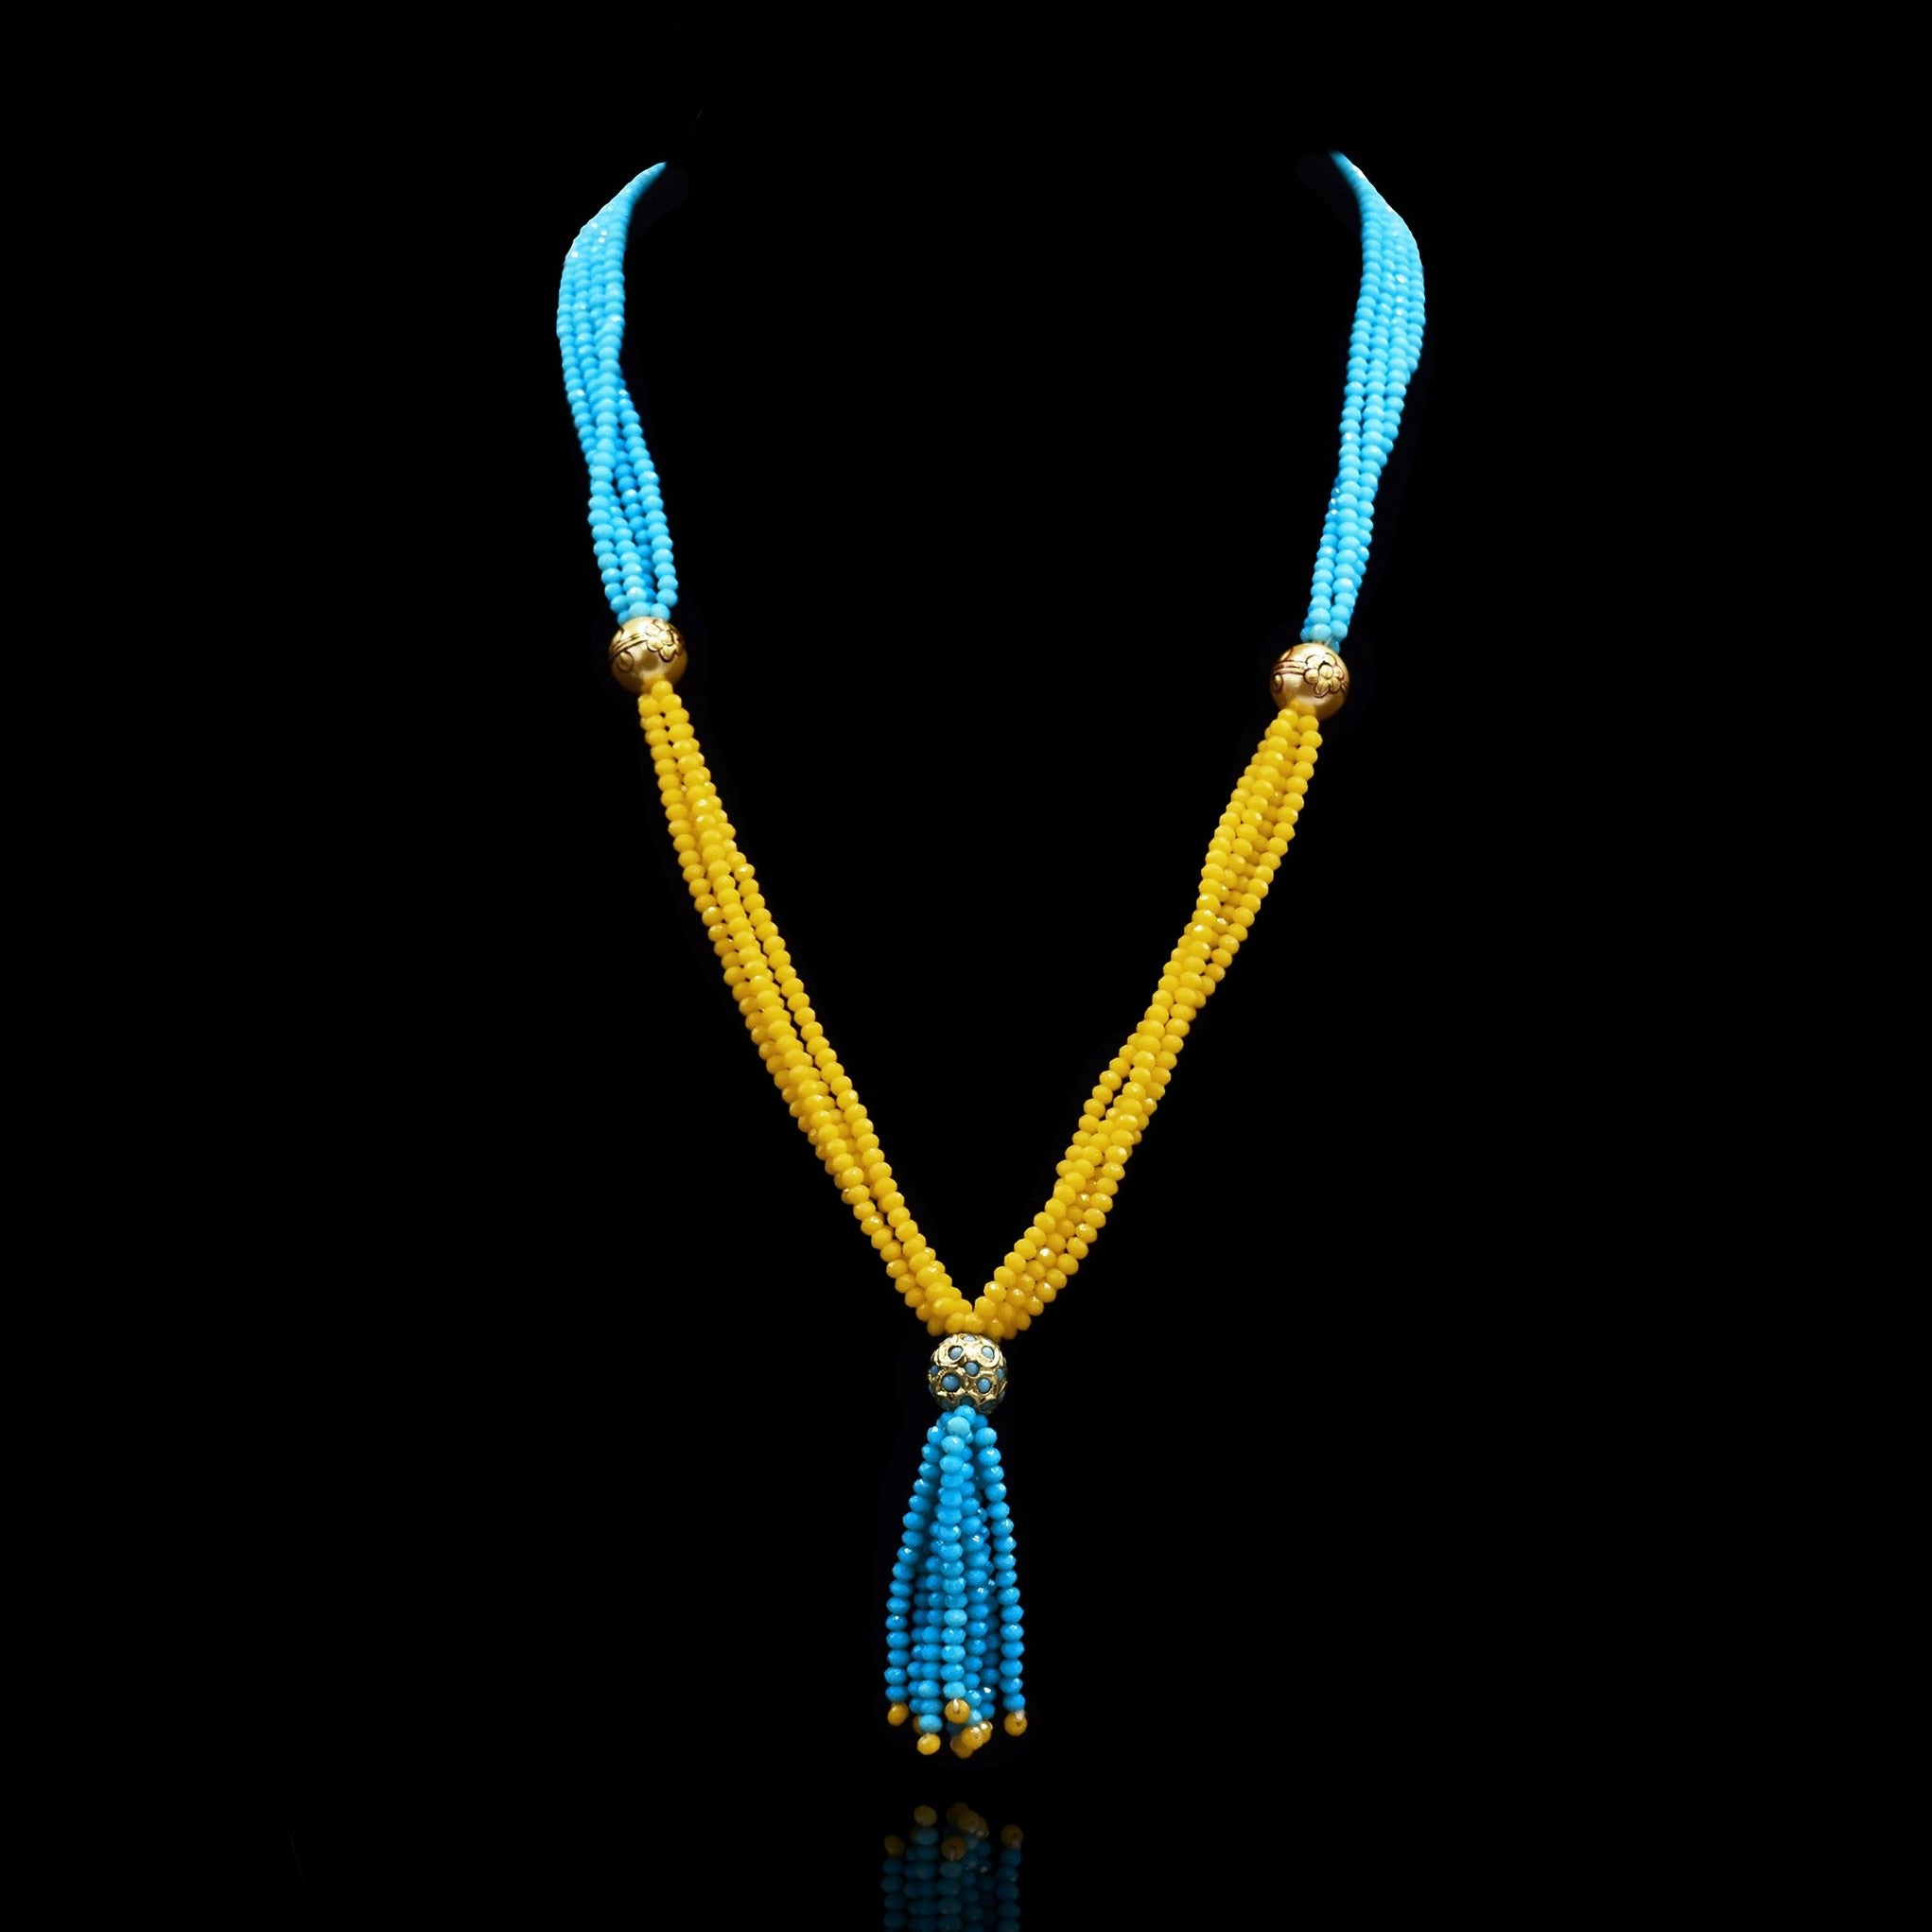 Natalie Blue Yellow Beads Necklace - The Pashm